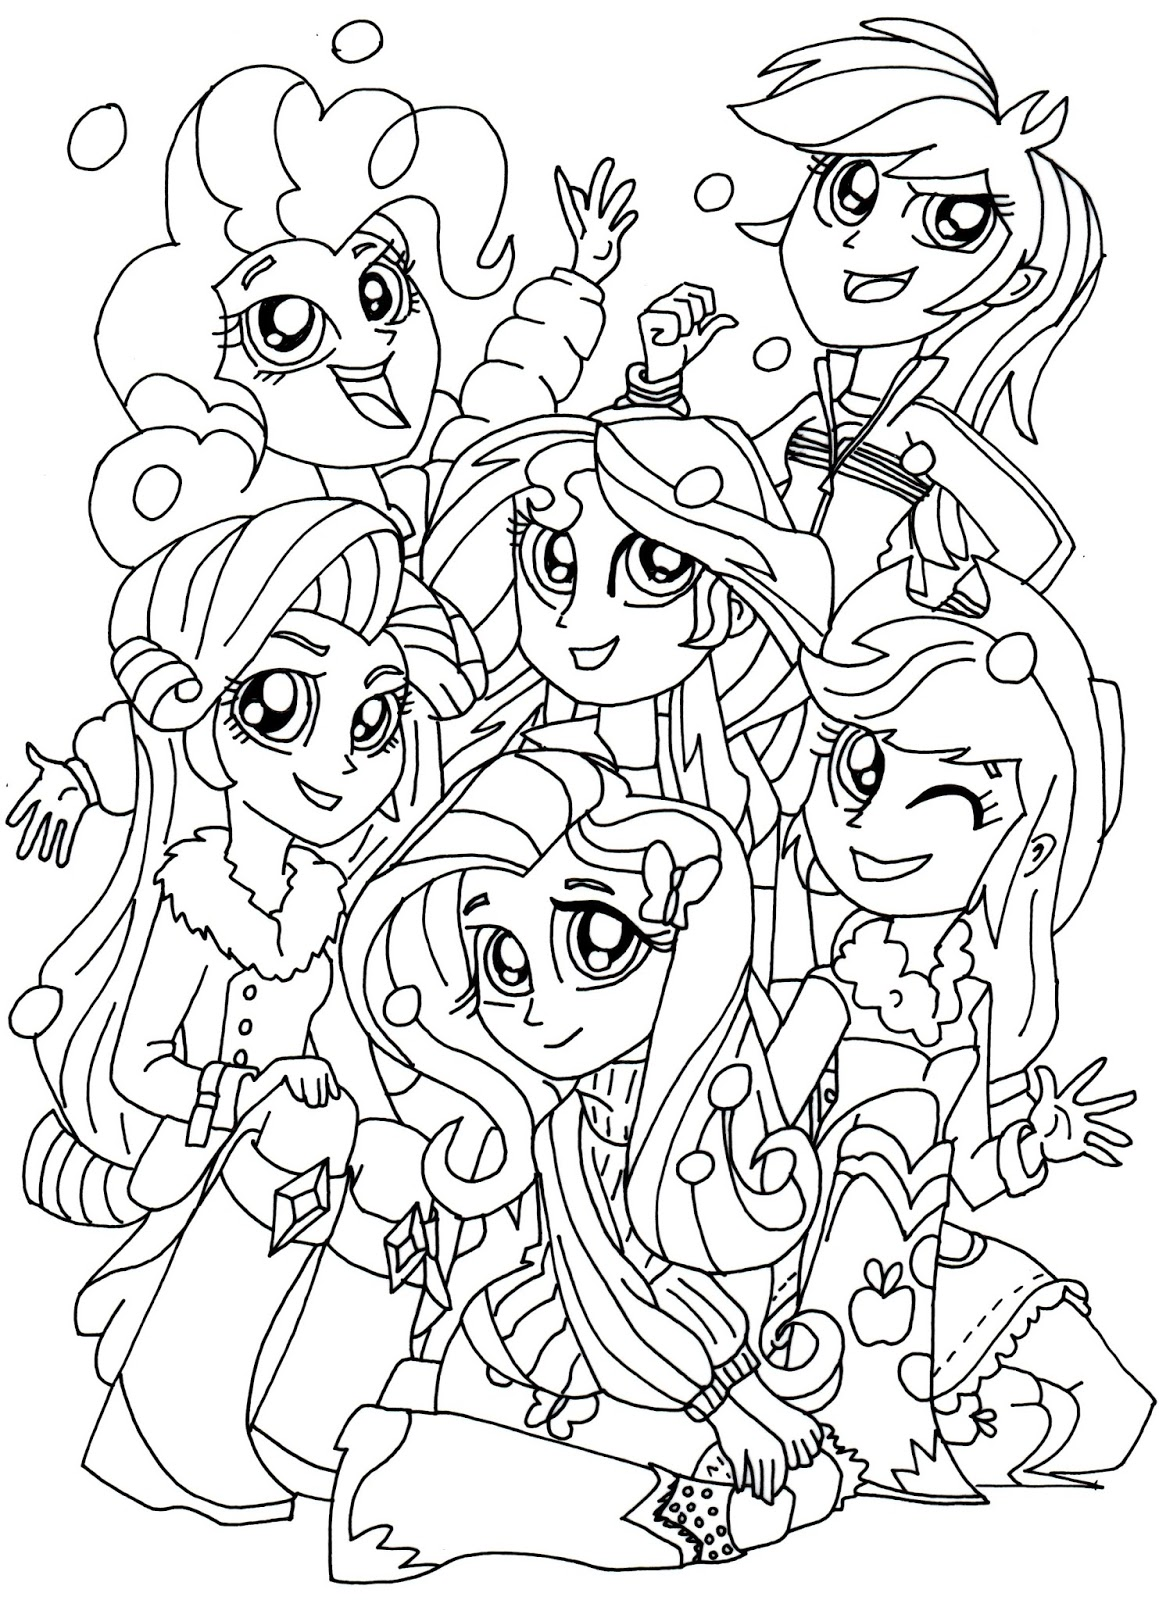 Coloring Pages Of My Little Pony Equestria : Free printable my little pony coloring pages january